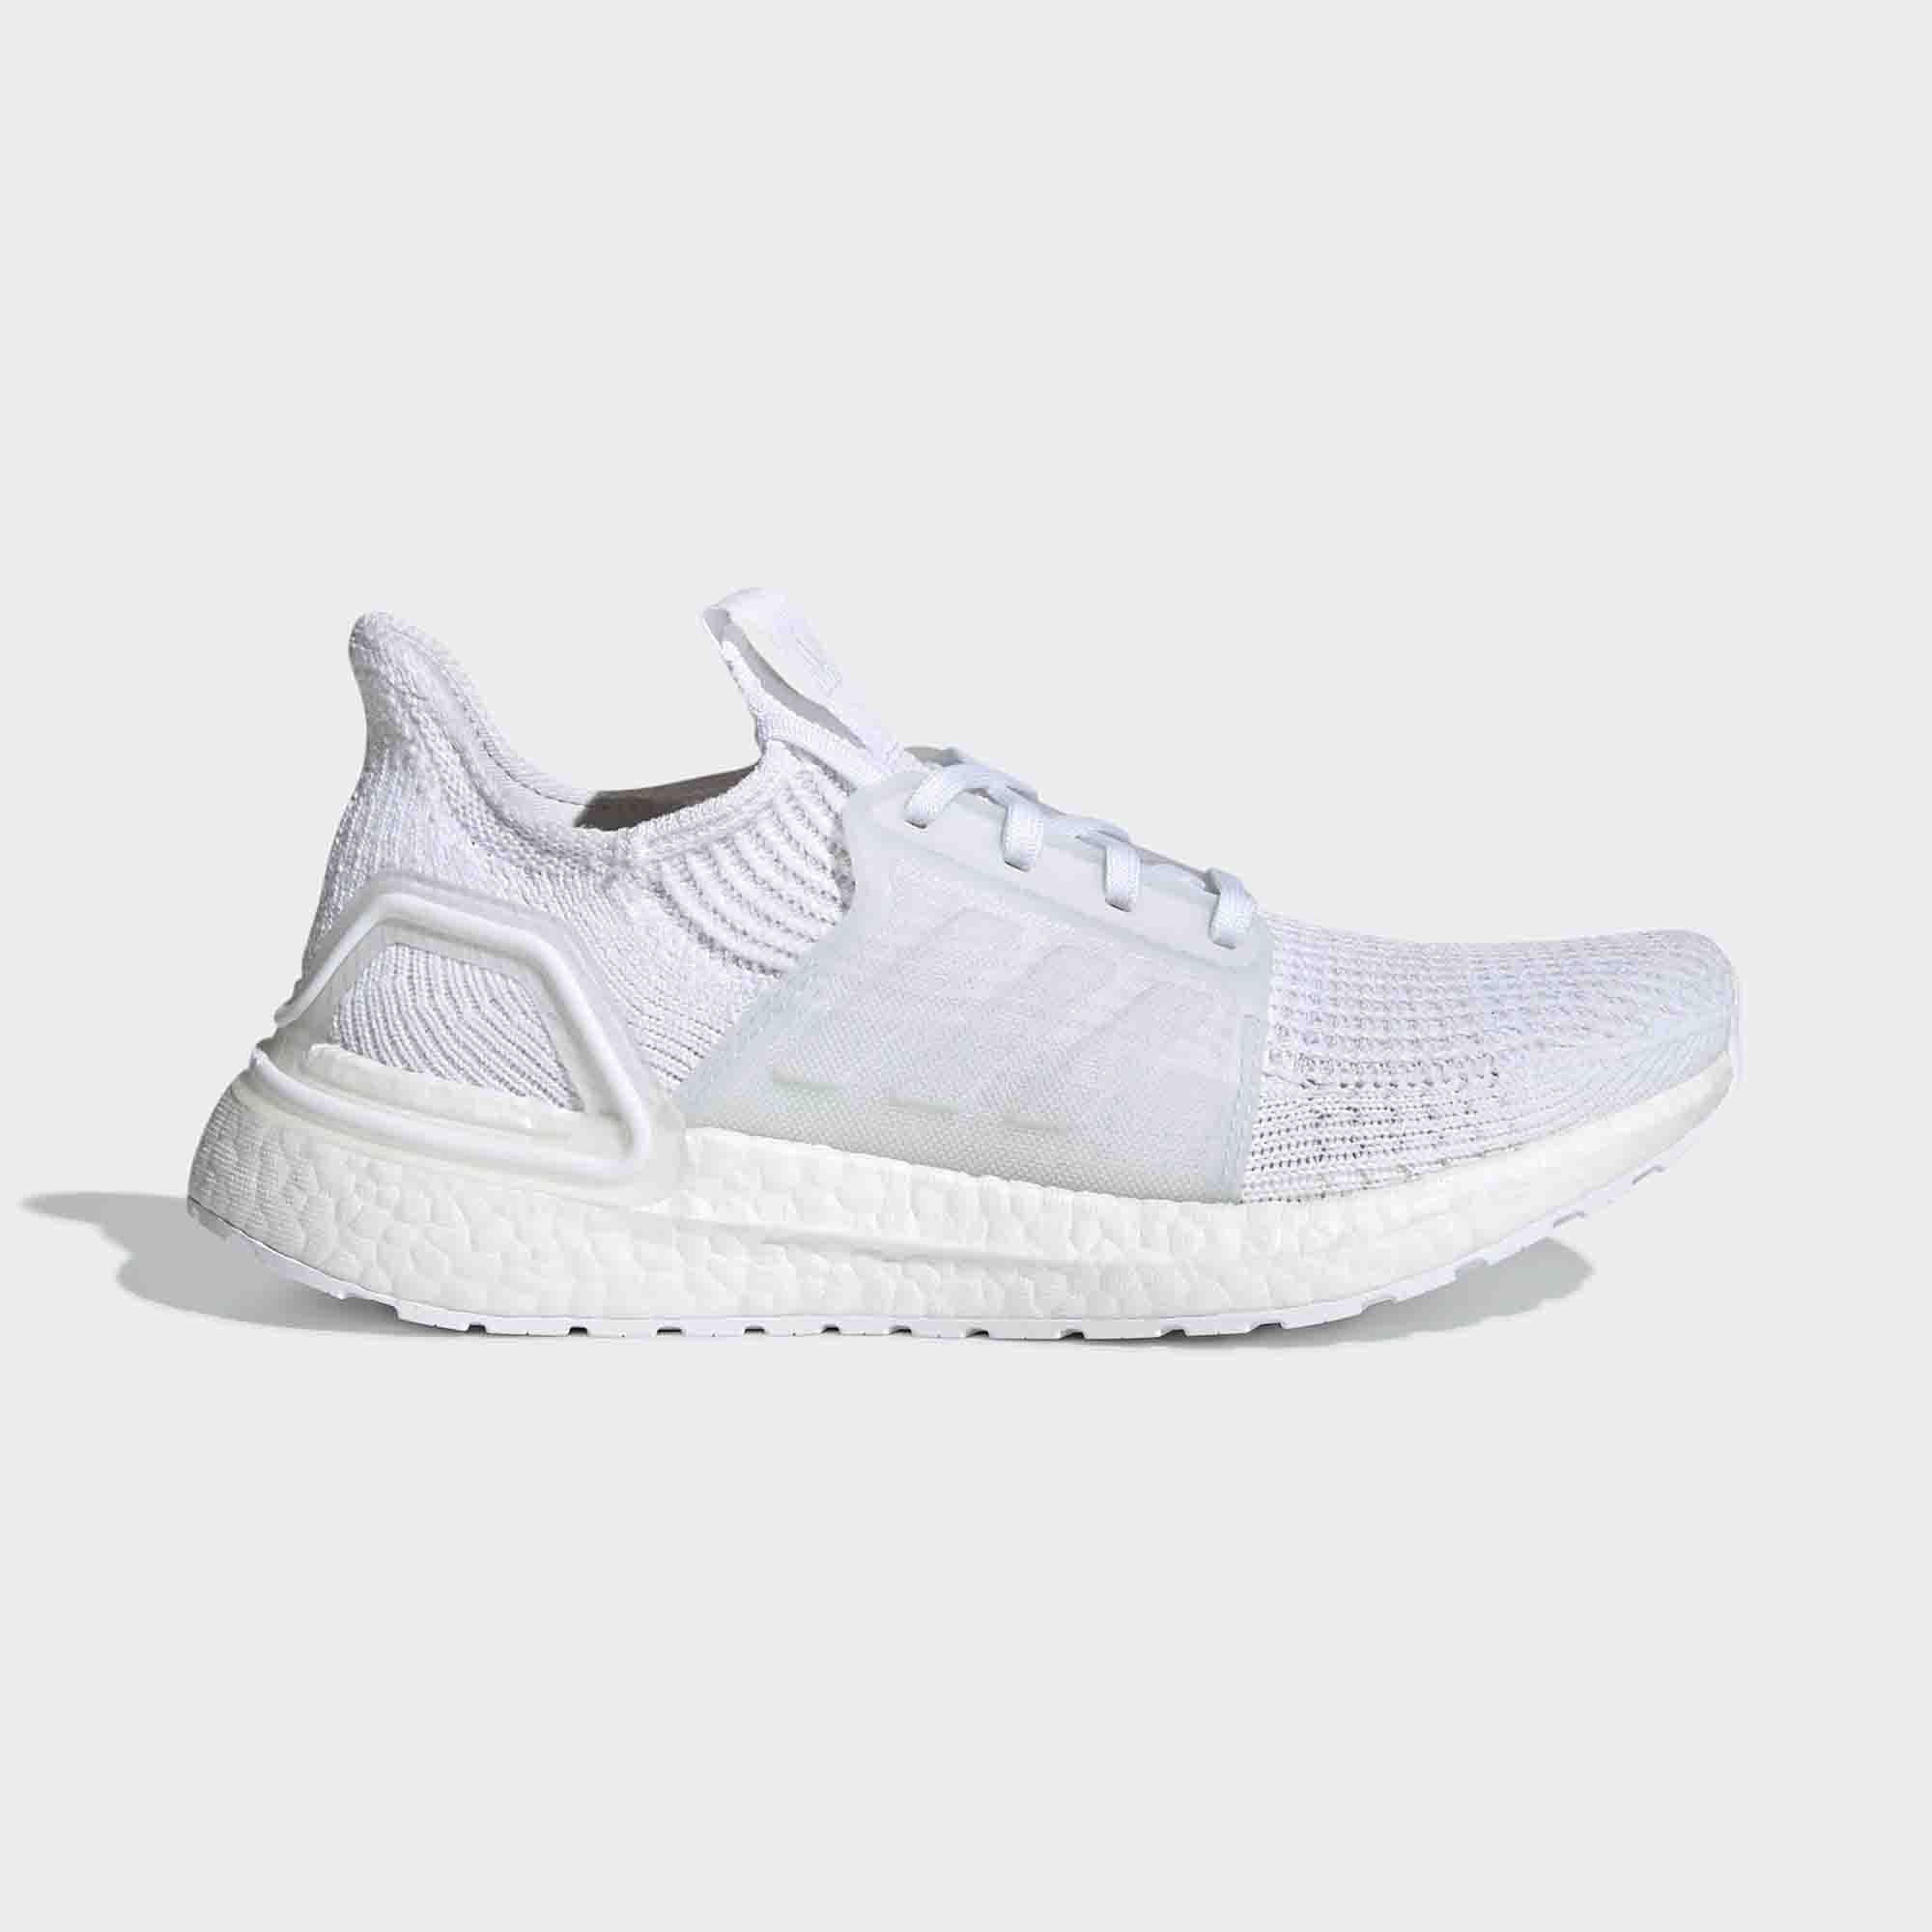 9f1d8b34884 Buy adidas Women Ultraboost 19 Running Shoes Online in Singapore | Royal  Sporting House